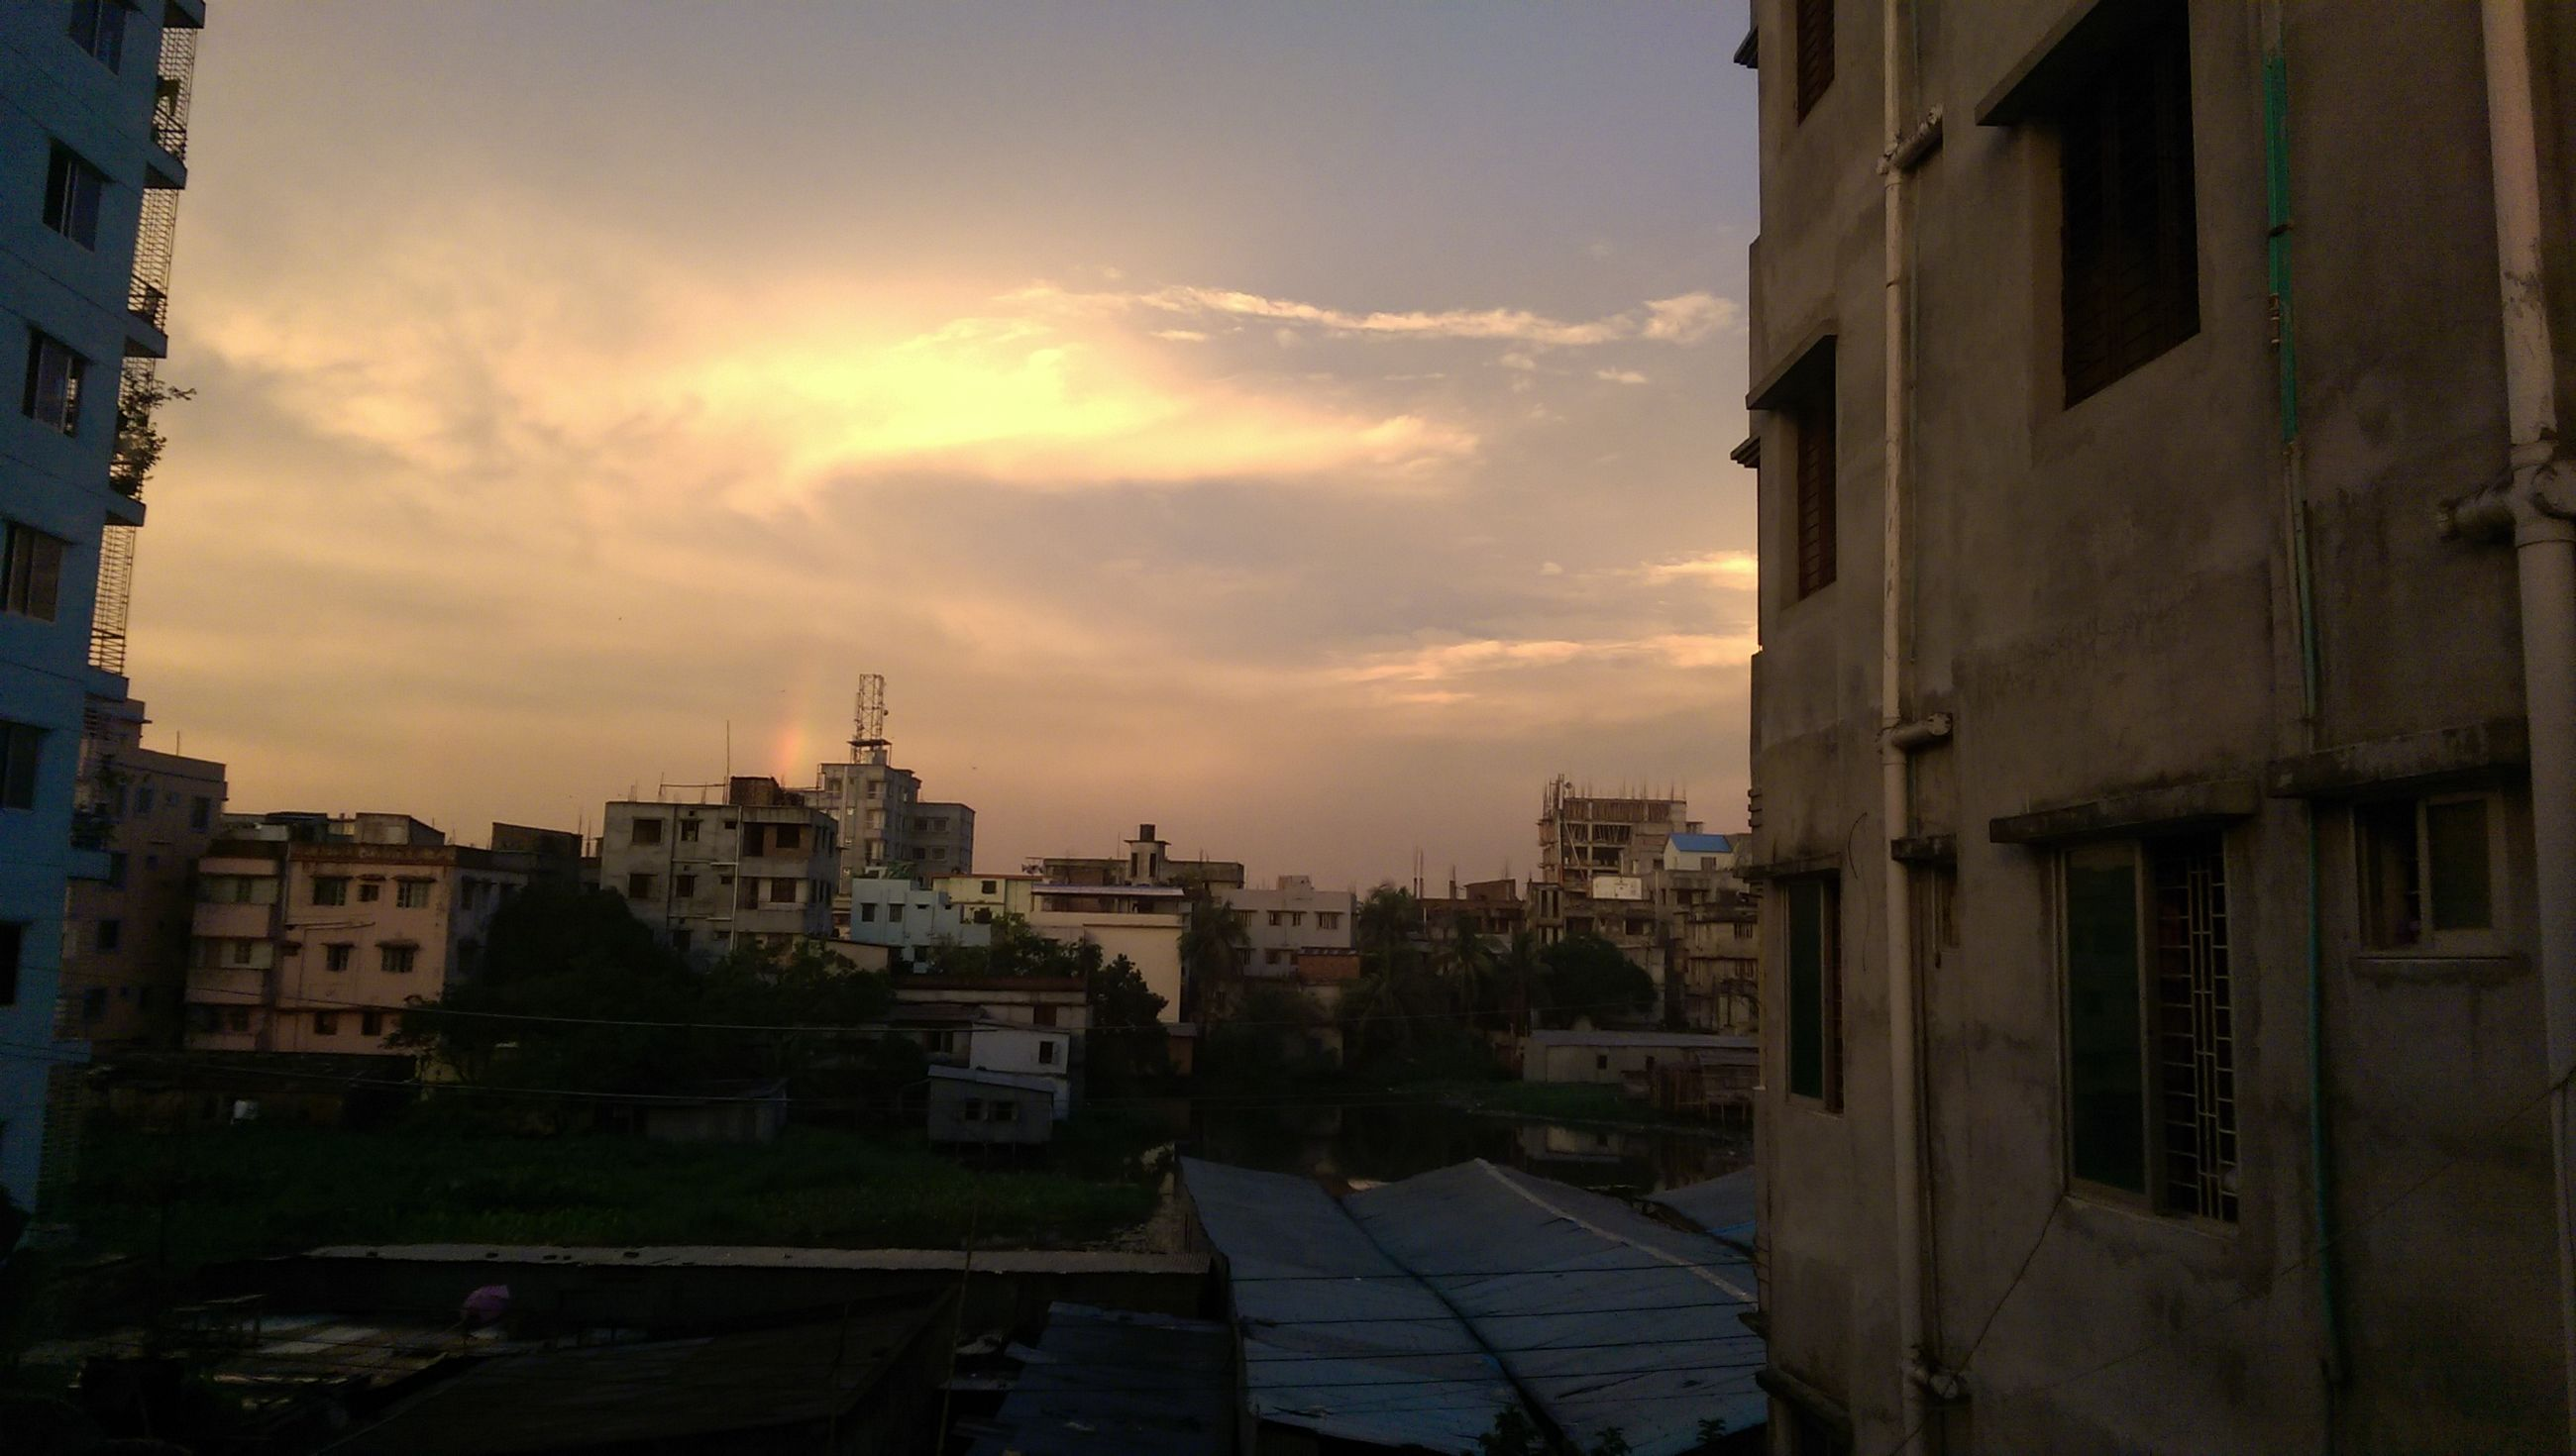 building exterior, architecture, built structure, residential building, residential structure, sky, sunset, city, residential district, cloud - sky, building, house, cloud, cityscape, town, sunlight, outdoors, city life, street, no people